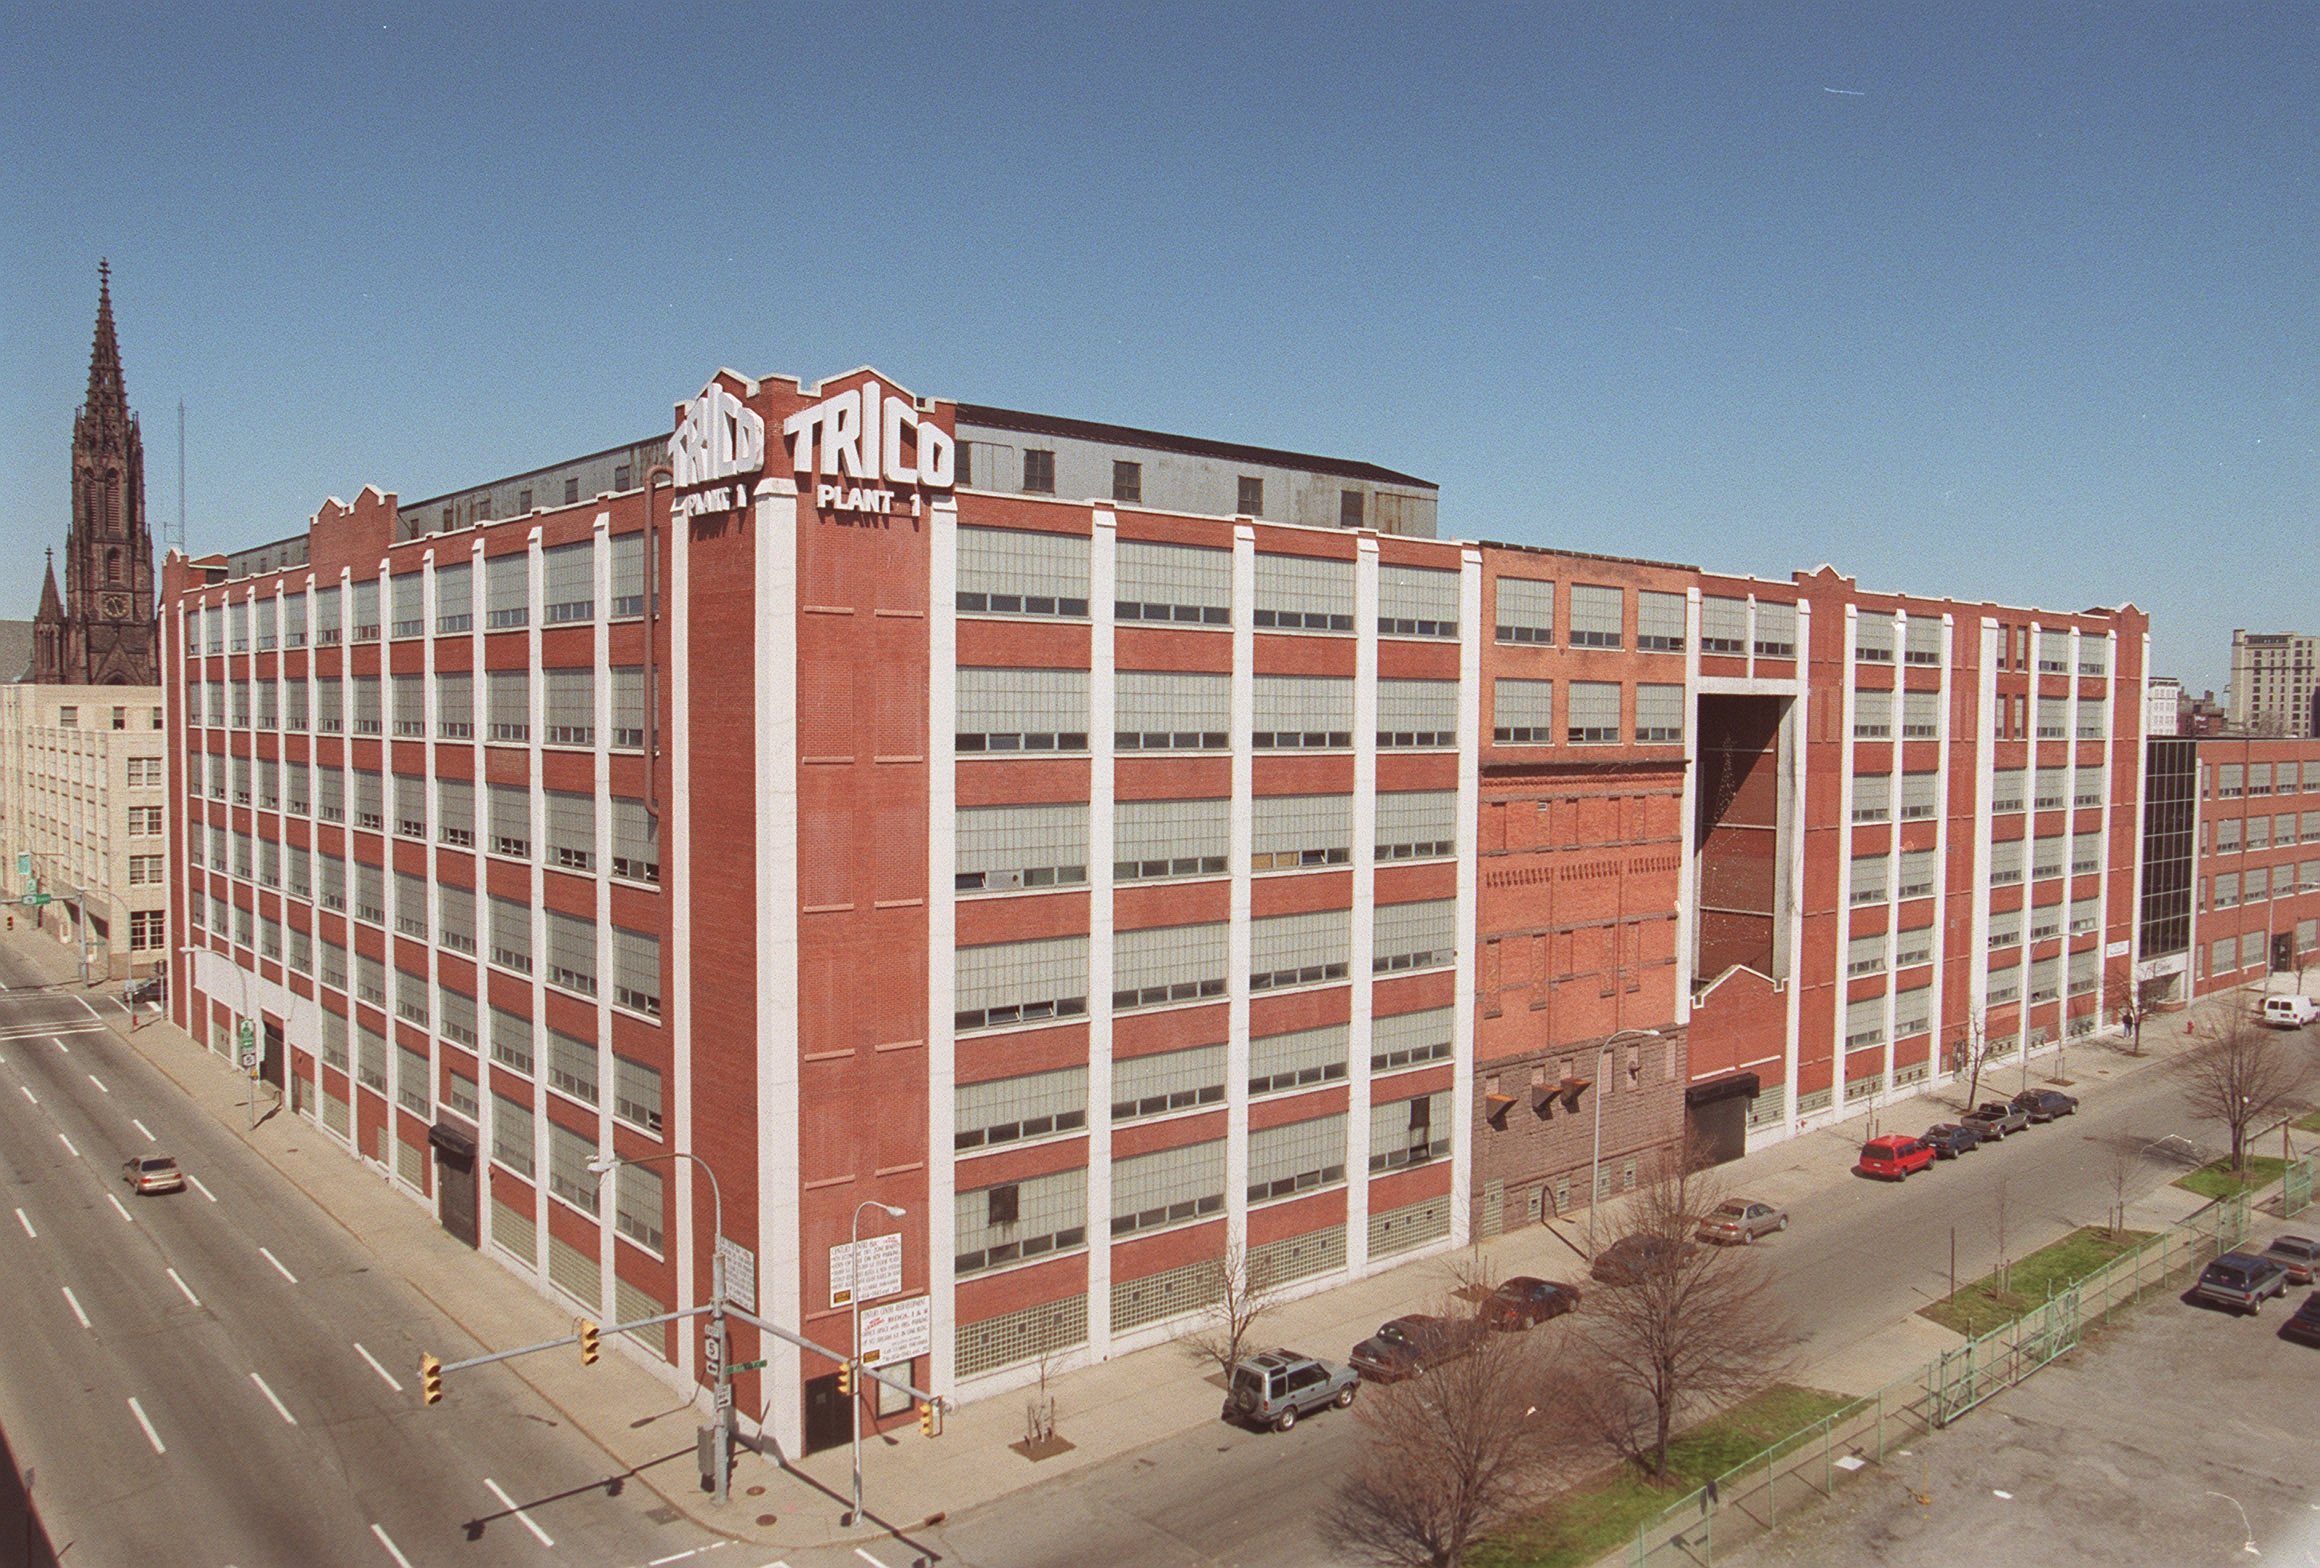 Historic former Trico Building will be converted by Krog Corp. and Hart Hotels into a mixed-use facility.